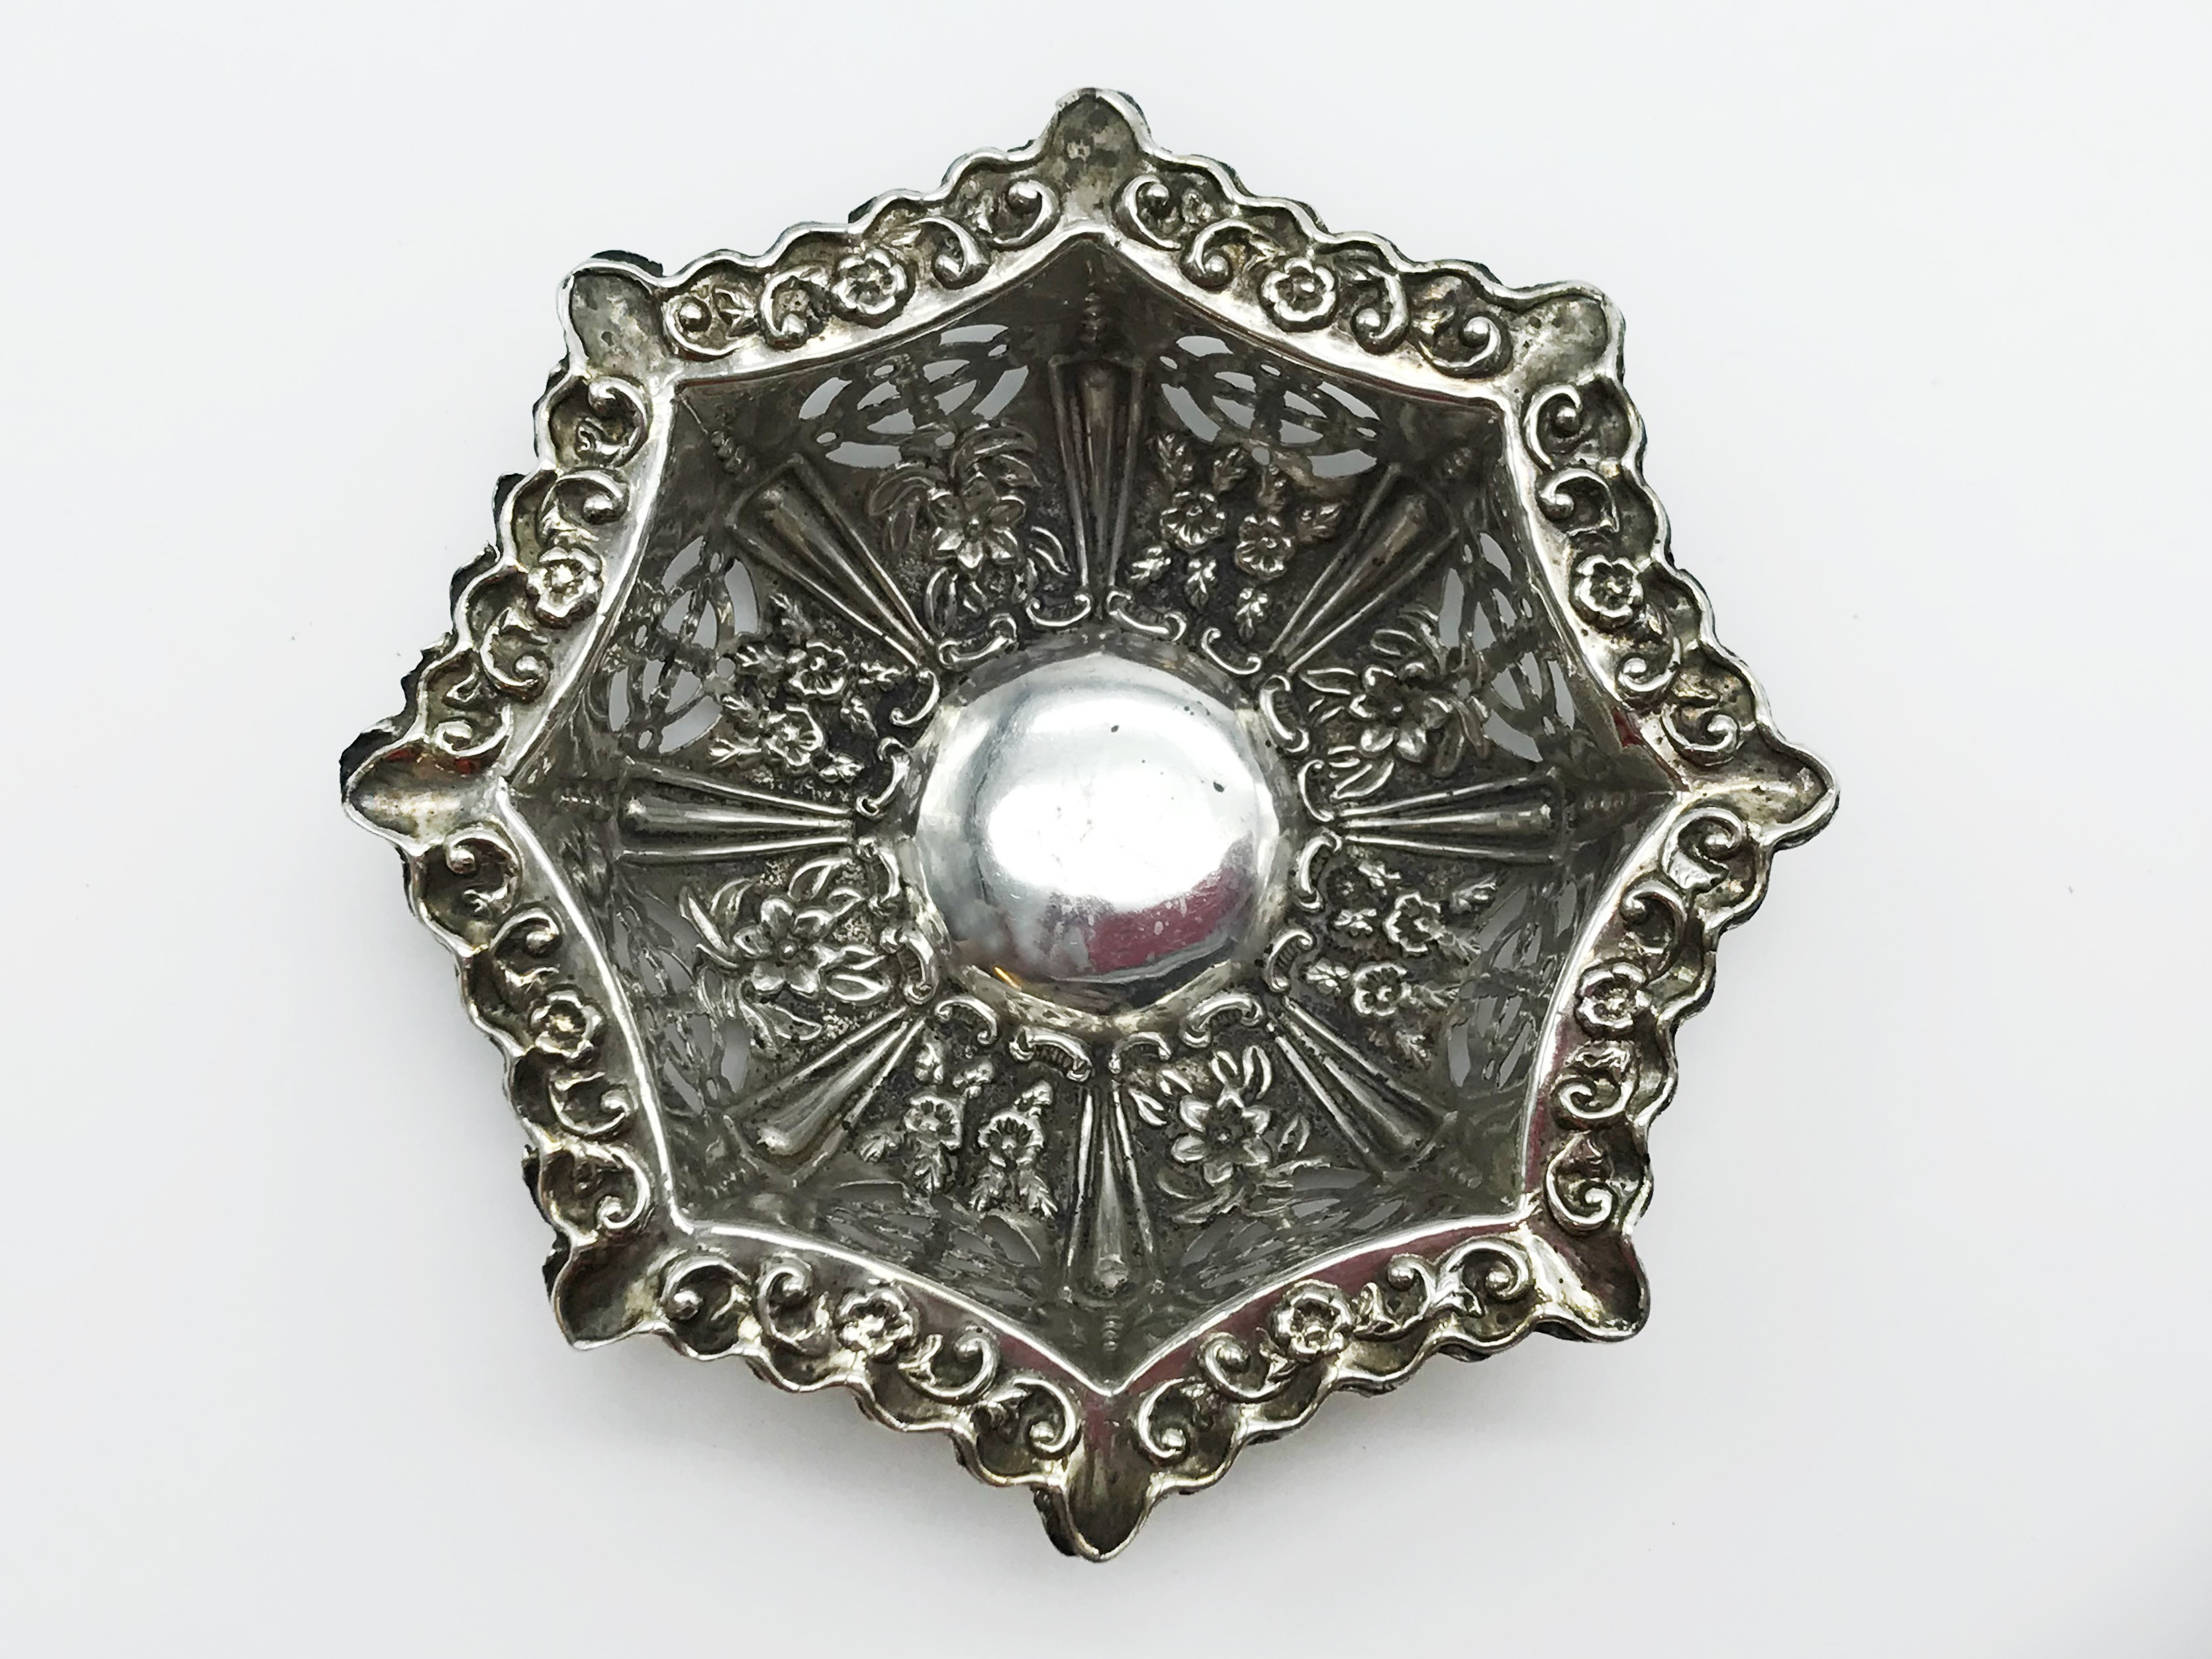 Lot 2 - PAIR OF HALLMARKED SILVER PIERCED DISHES